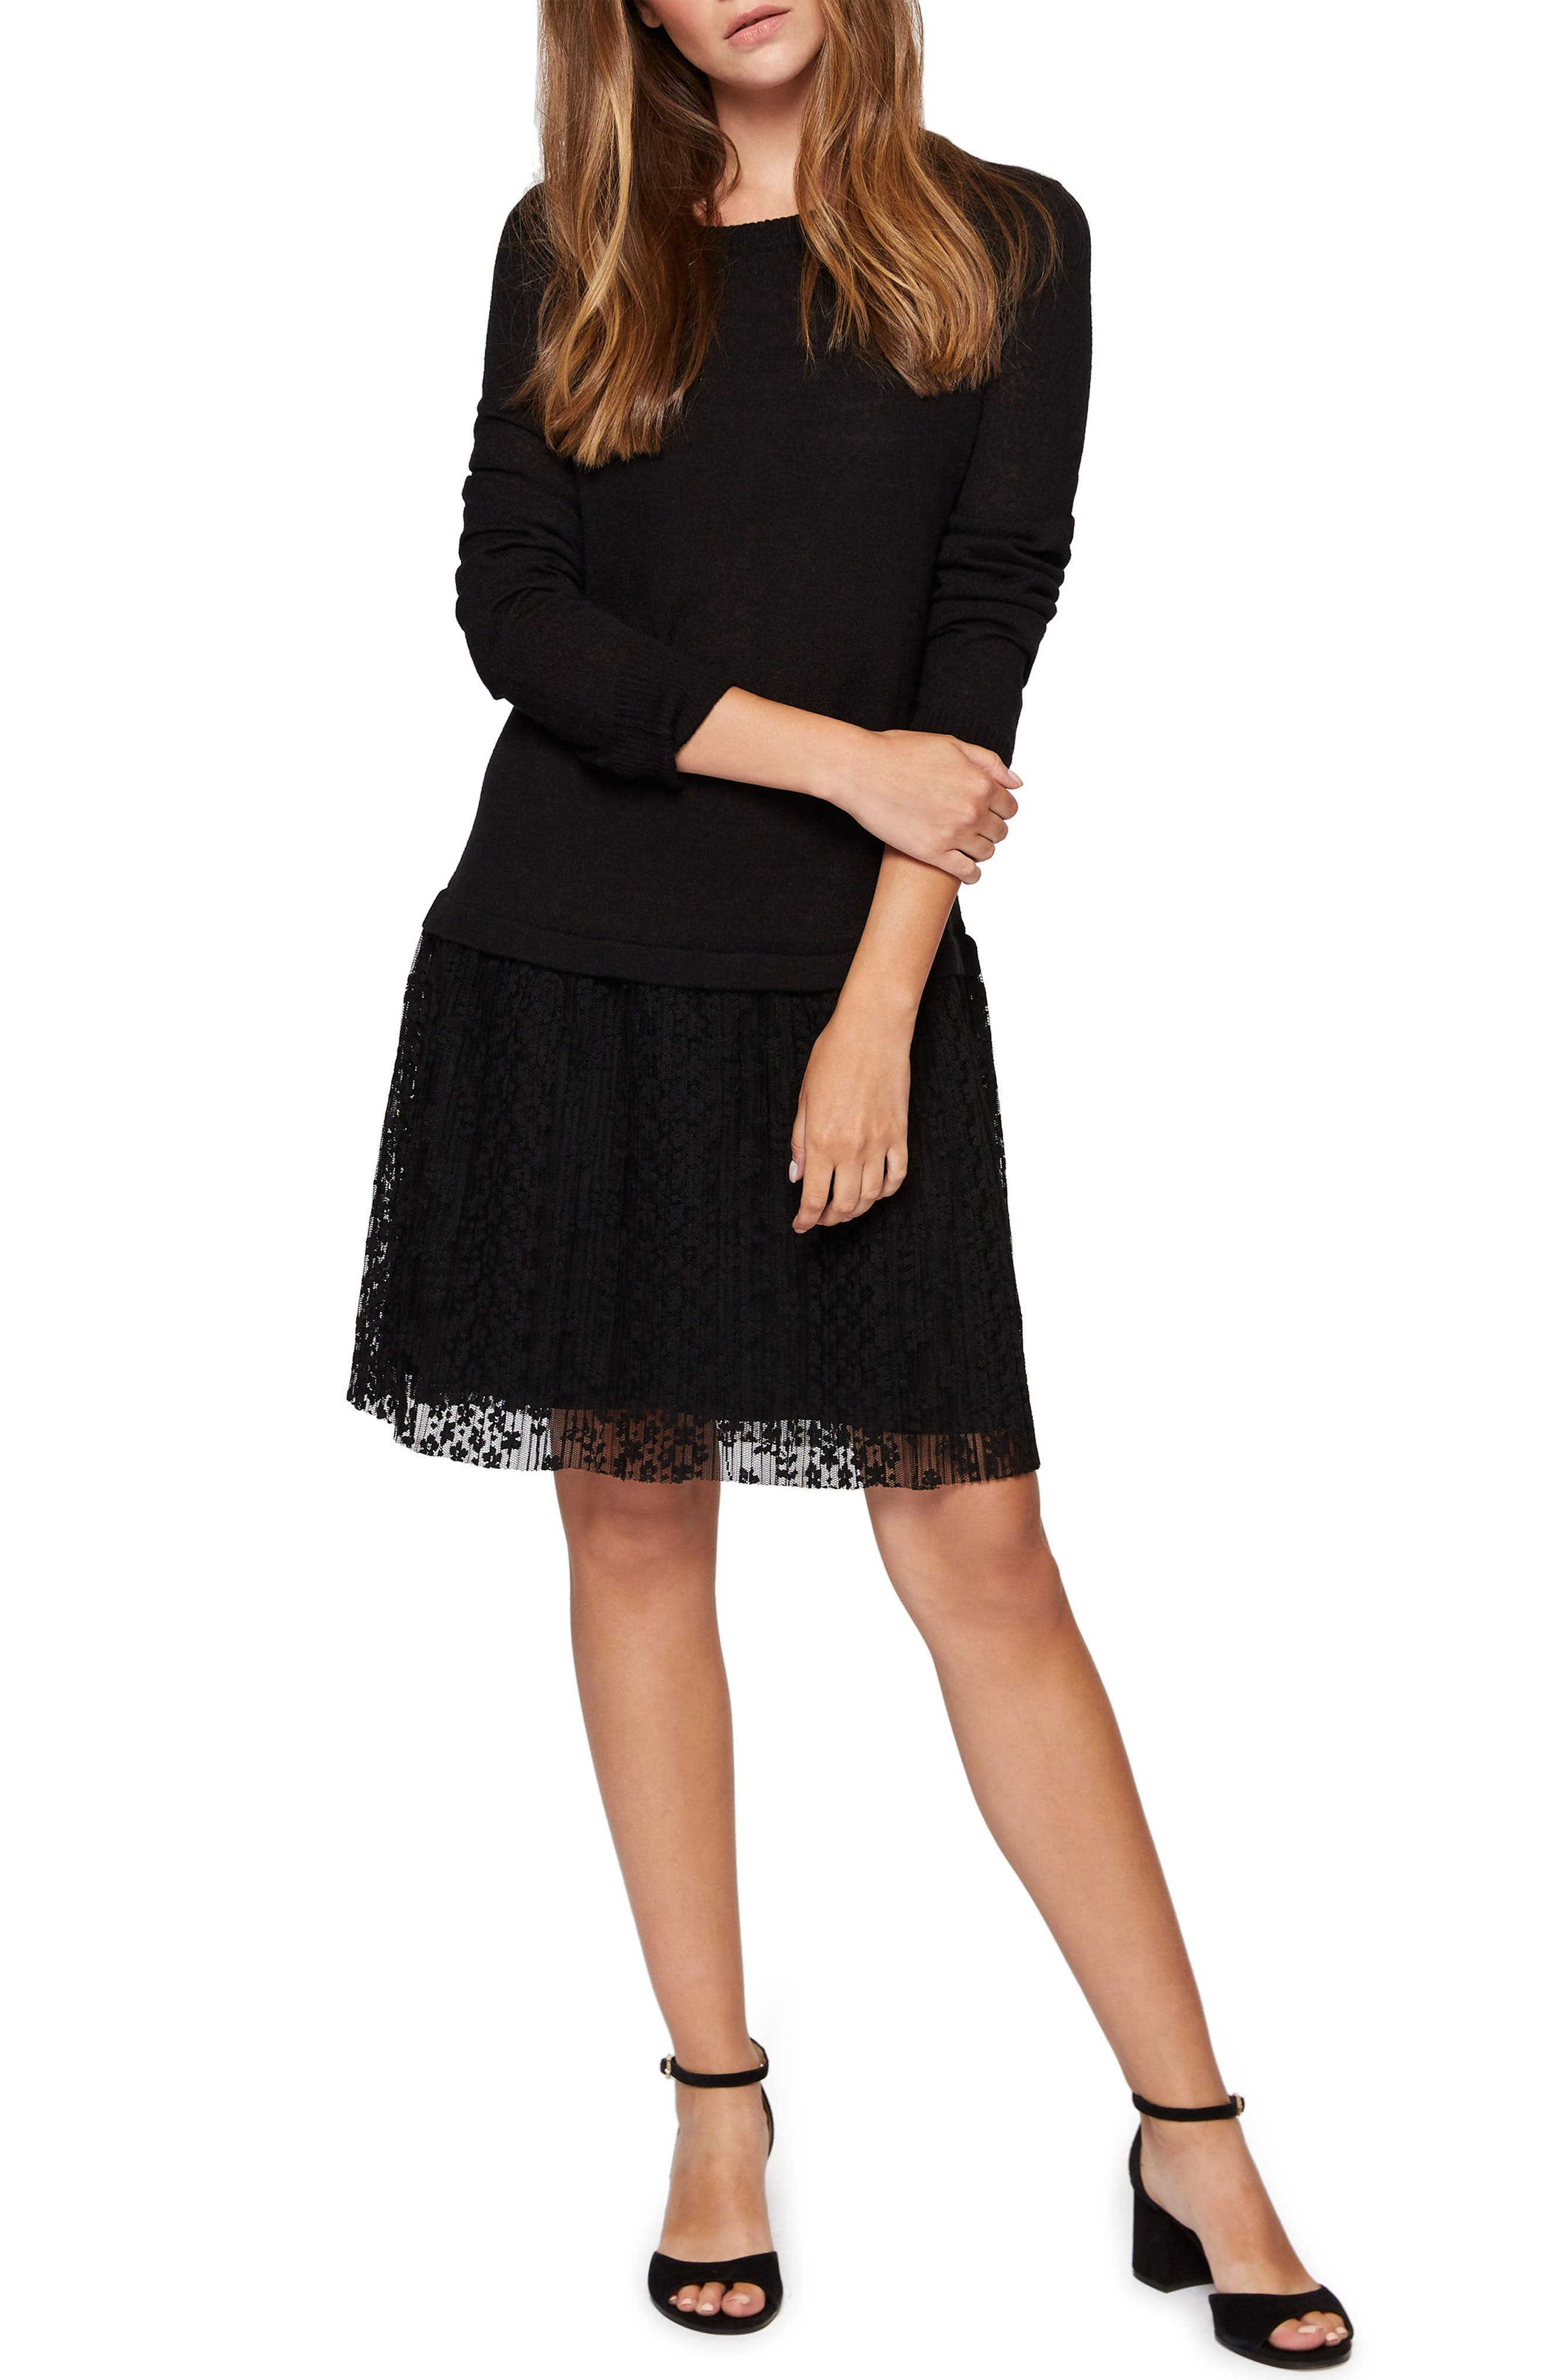 Alternate Image 1 Selected - Sanctuary Sophie Lace Skirt Sweater Dress